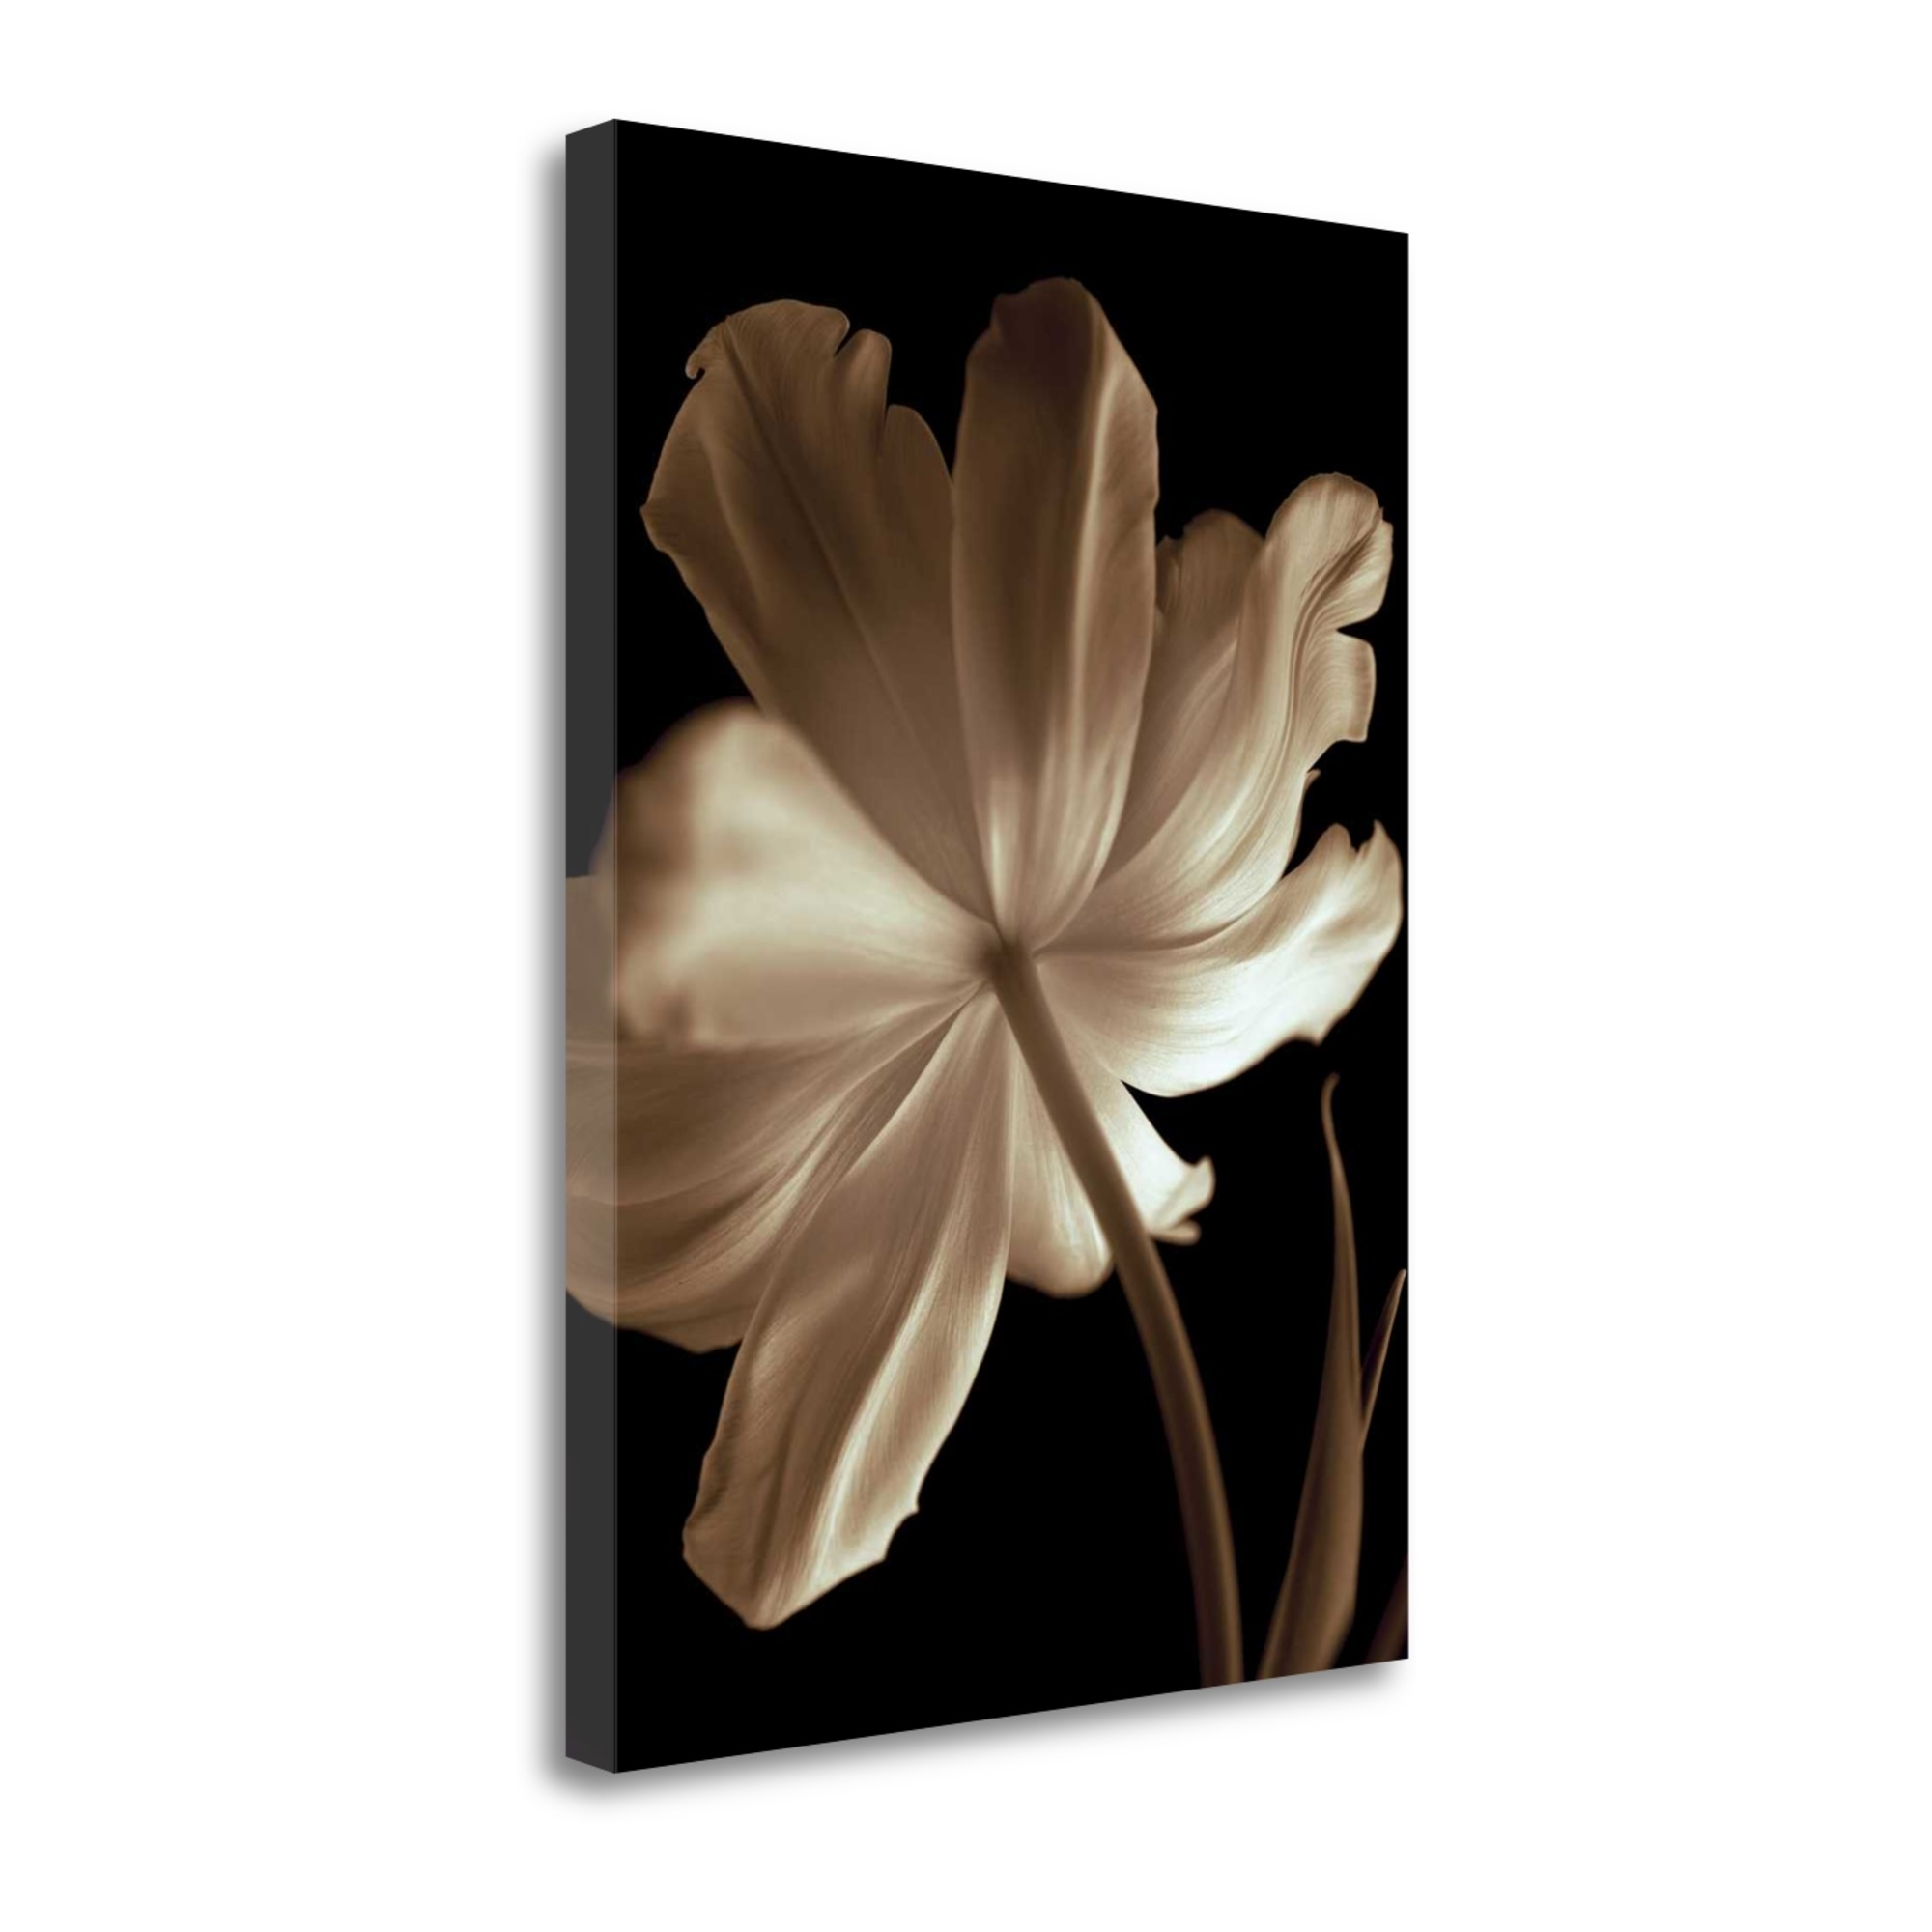 "Champagne Tulip II By Charles Britt, 28"" x 38\"" Fine Art Giclee Print on Gallery Wrap Canvas, Ready to Hang"